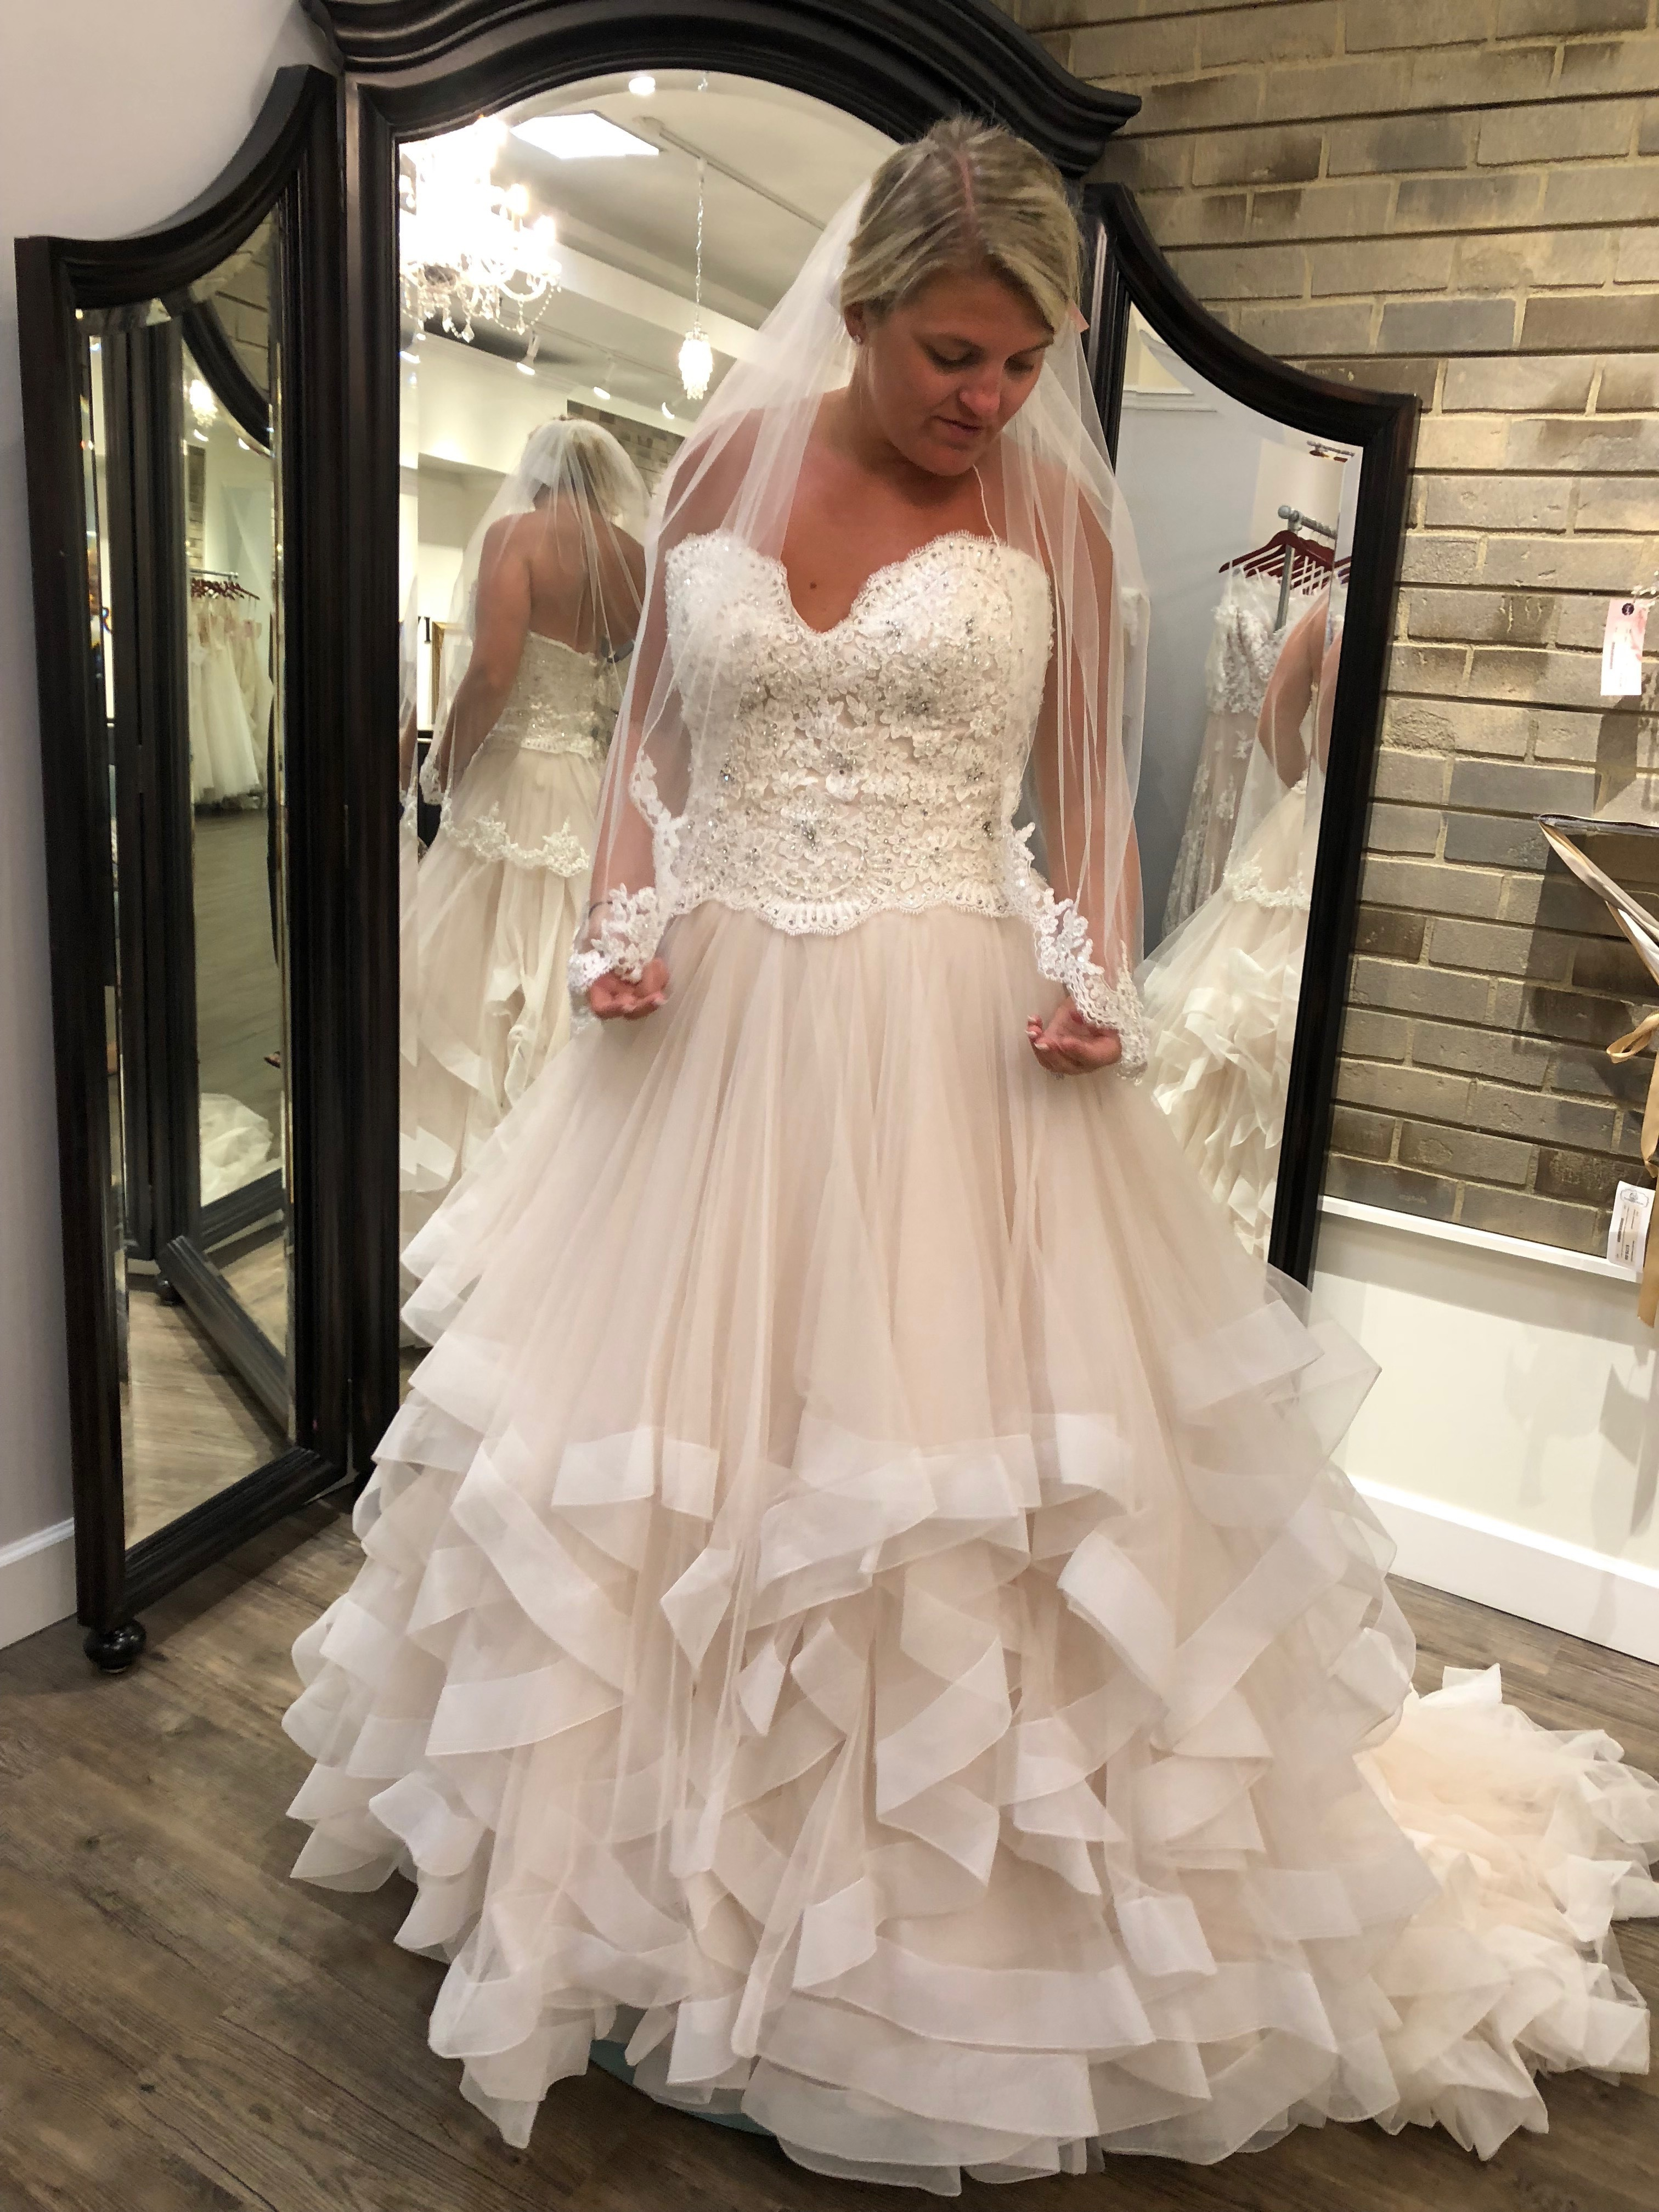 Marcia wedding dress - 8816 size 14 - $700 - (62% OFF)